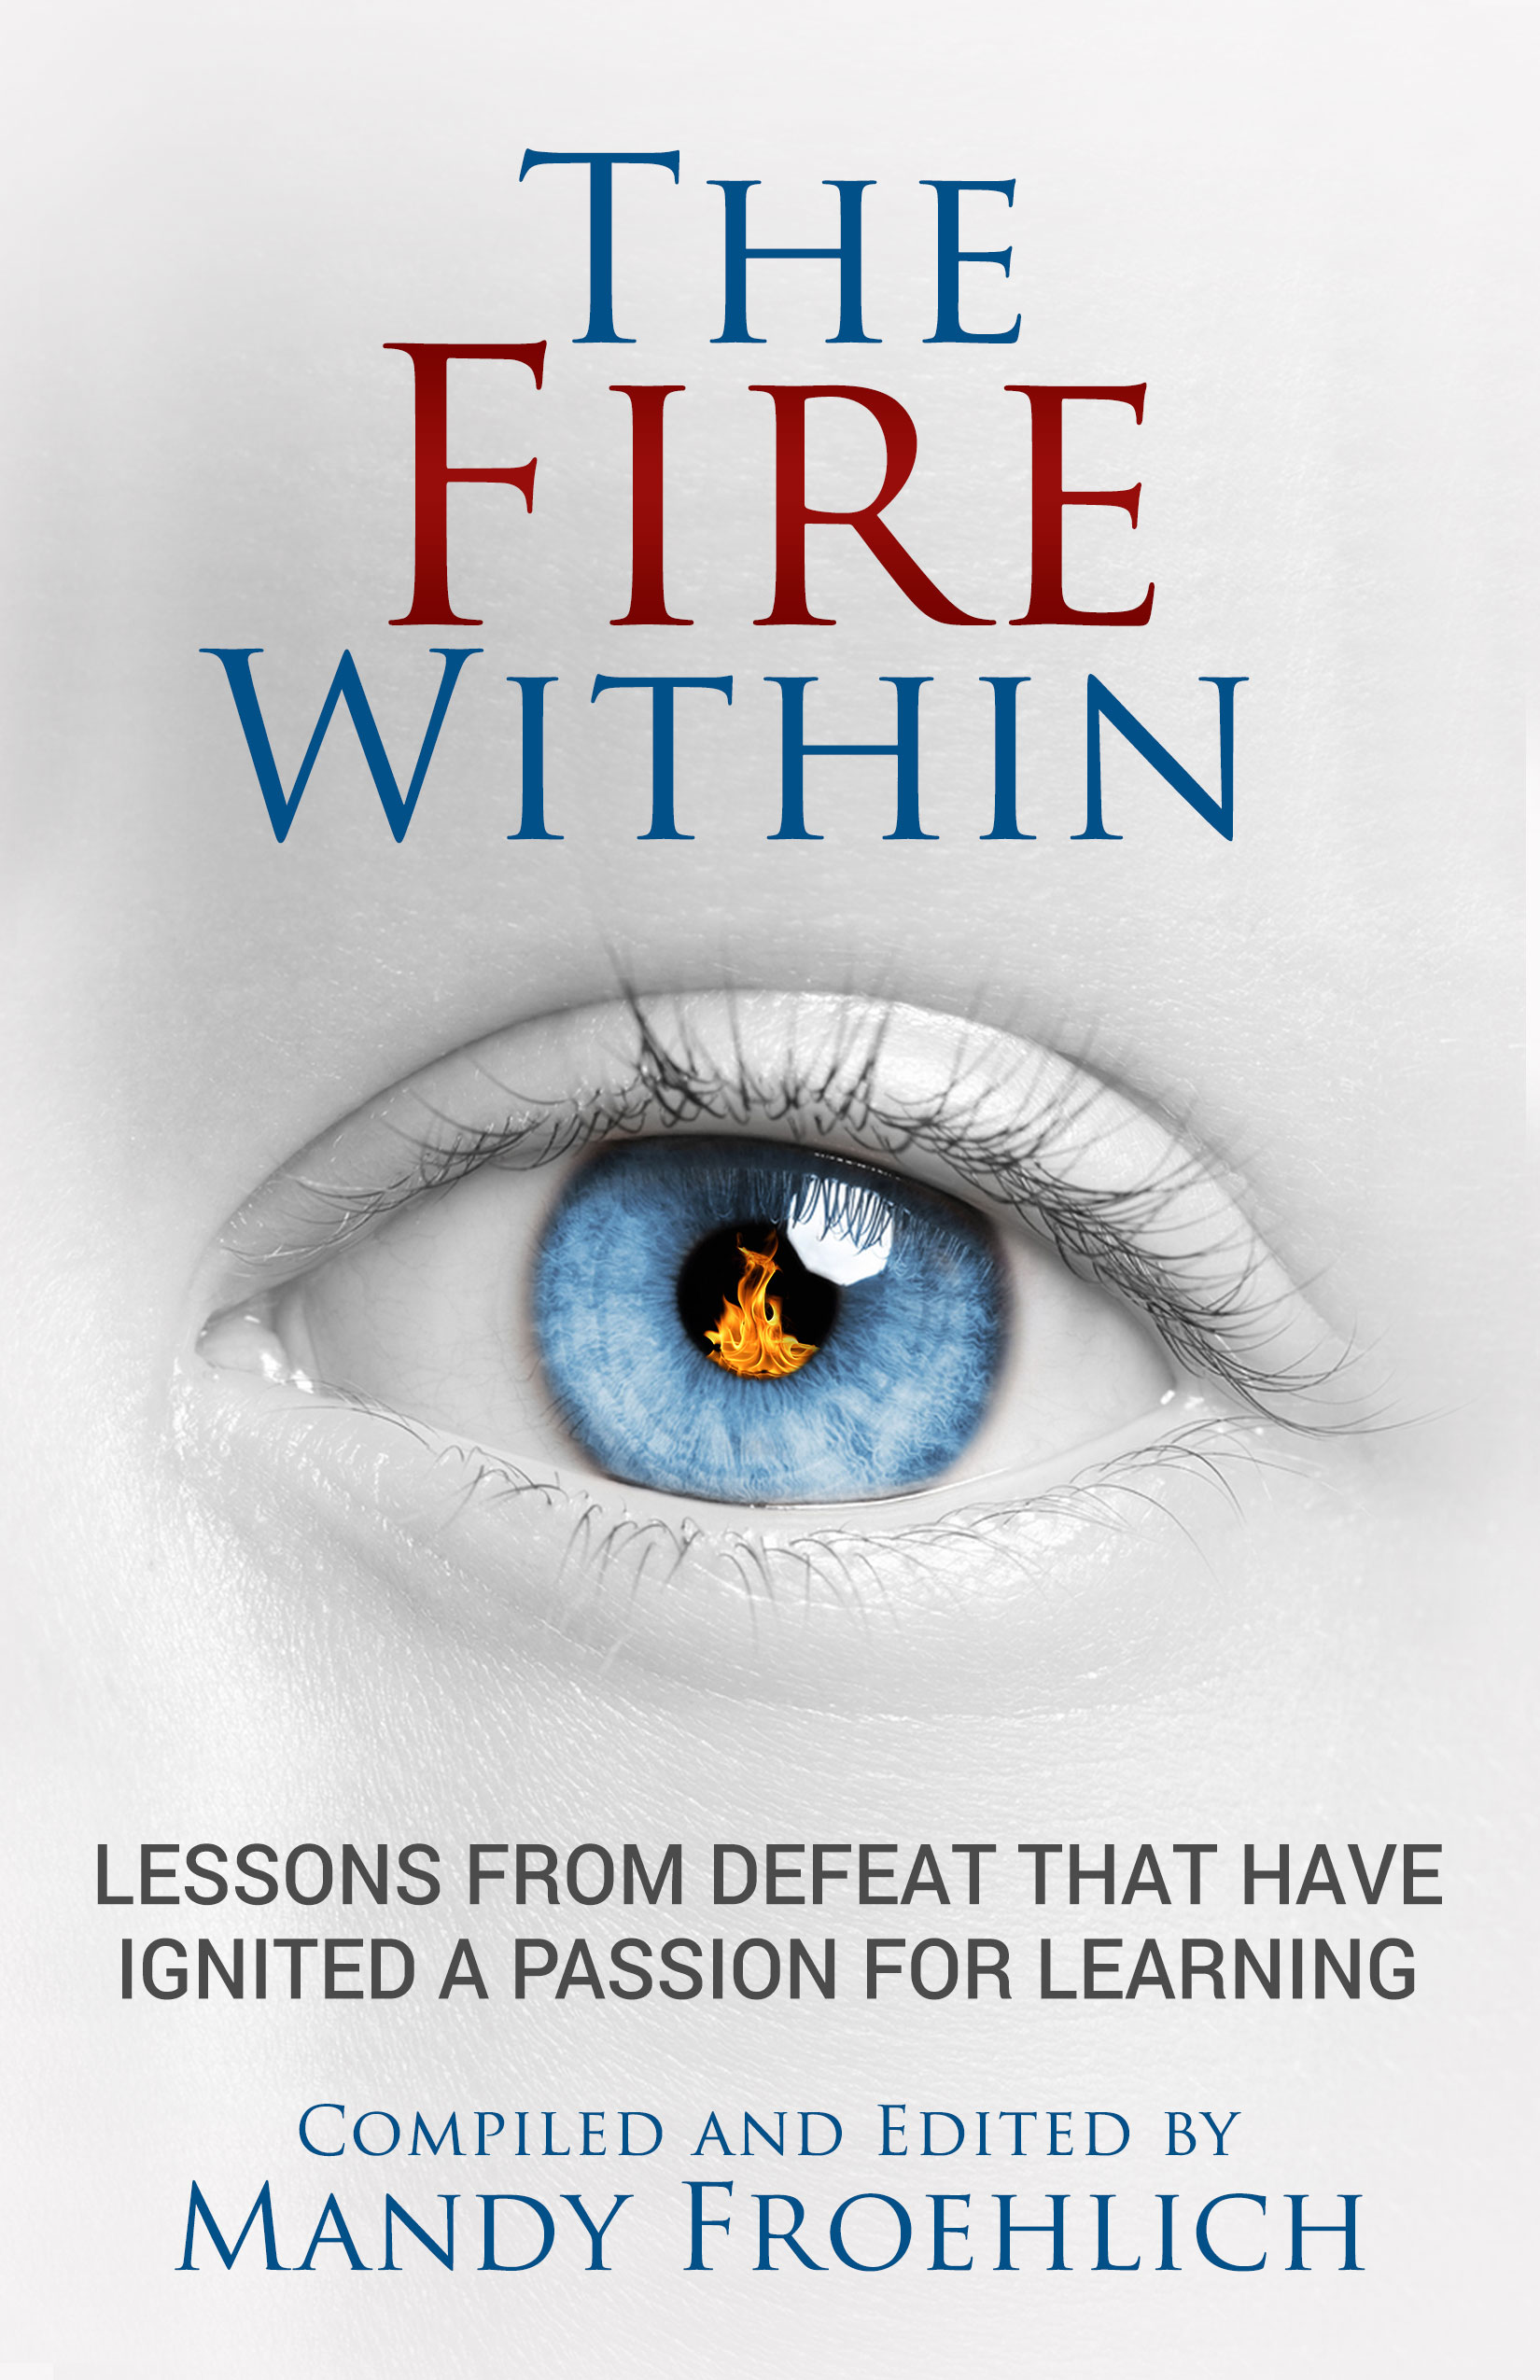 The Fire Within compiled and edited by Mandy Froehlich